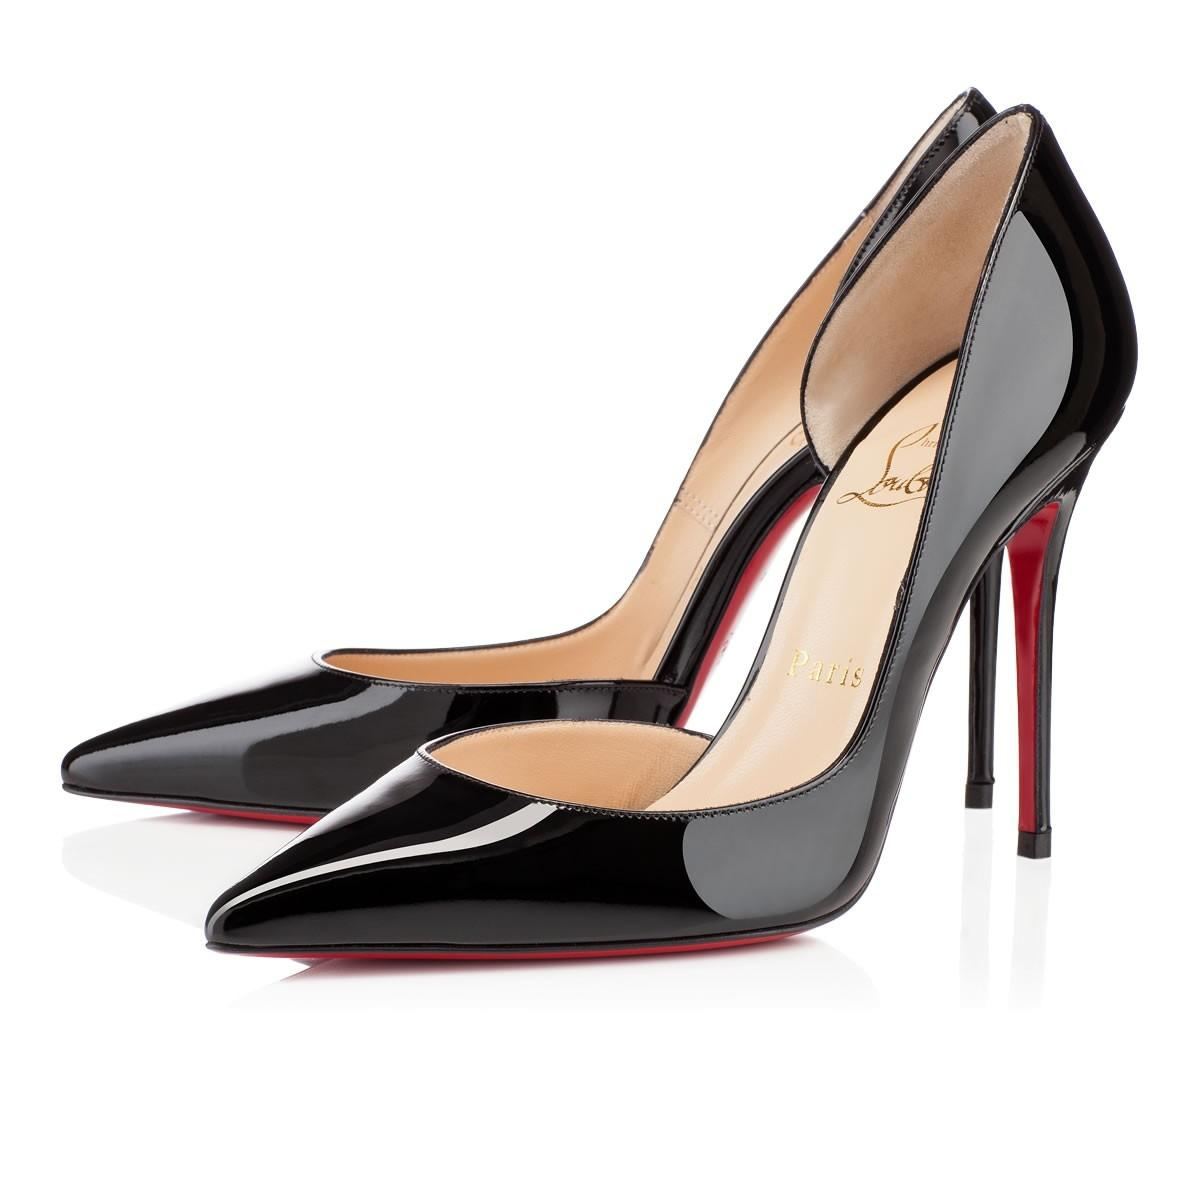 Christian Louboutin Black Iriza 100 Patent Leather Classic D'orsay Stiletto Cut Out Heel Pumps Size EU 41 (Approx. US 11) Regular (M, B)